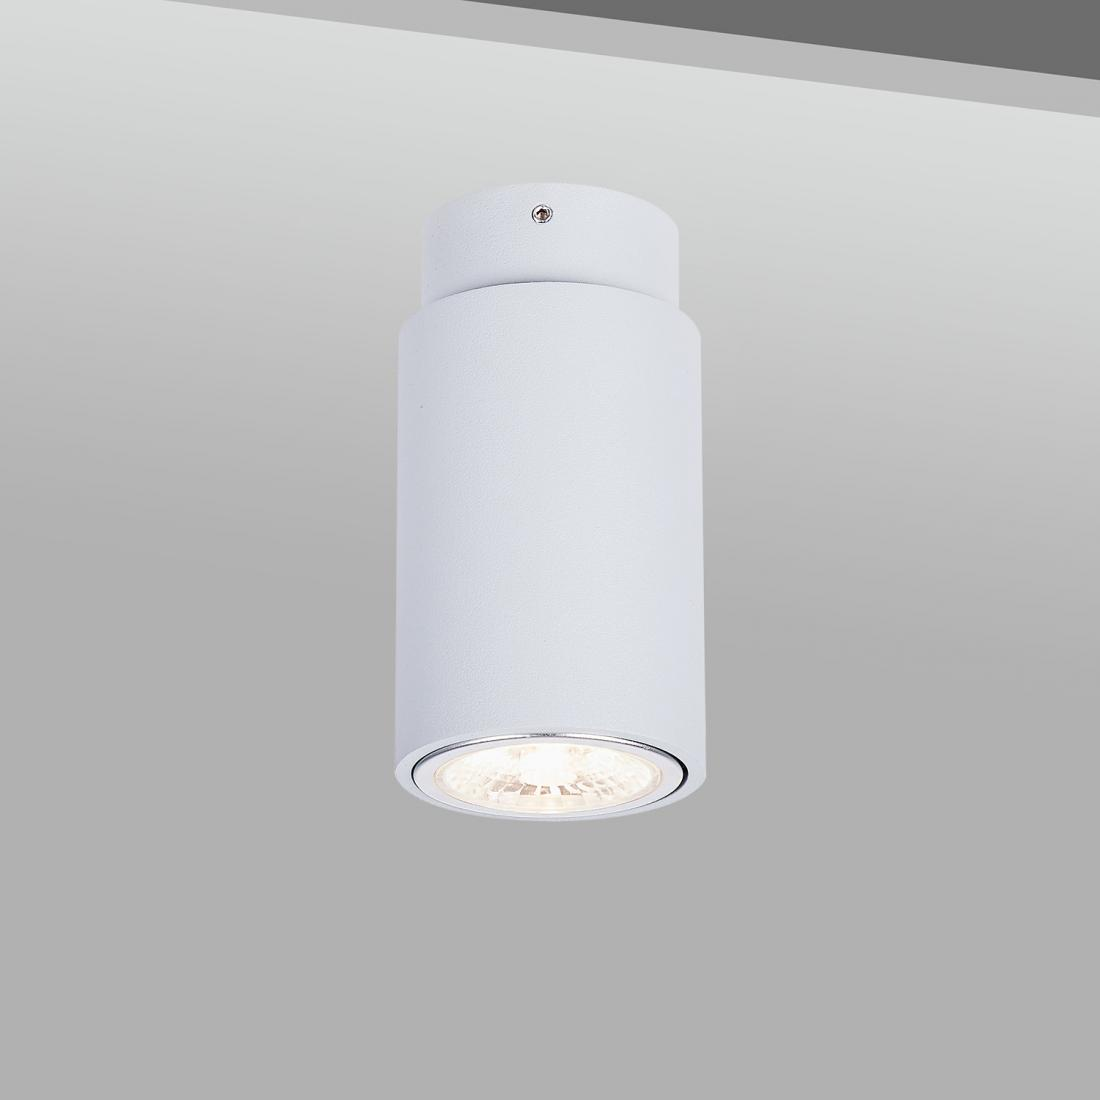 Architectural GU10 Halogen Ceiling Light